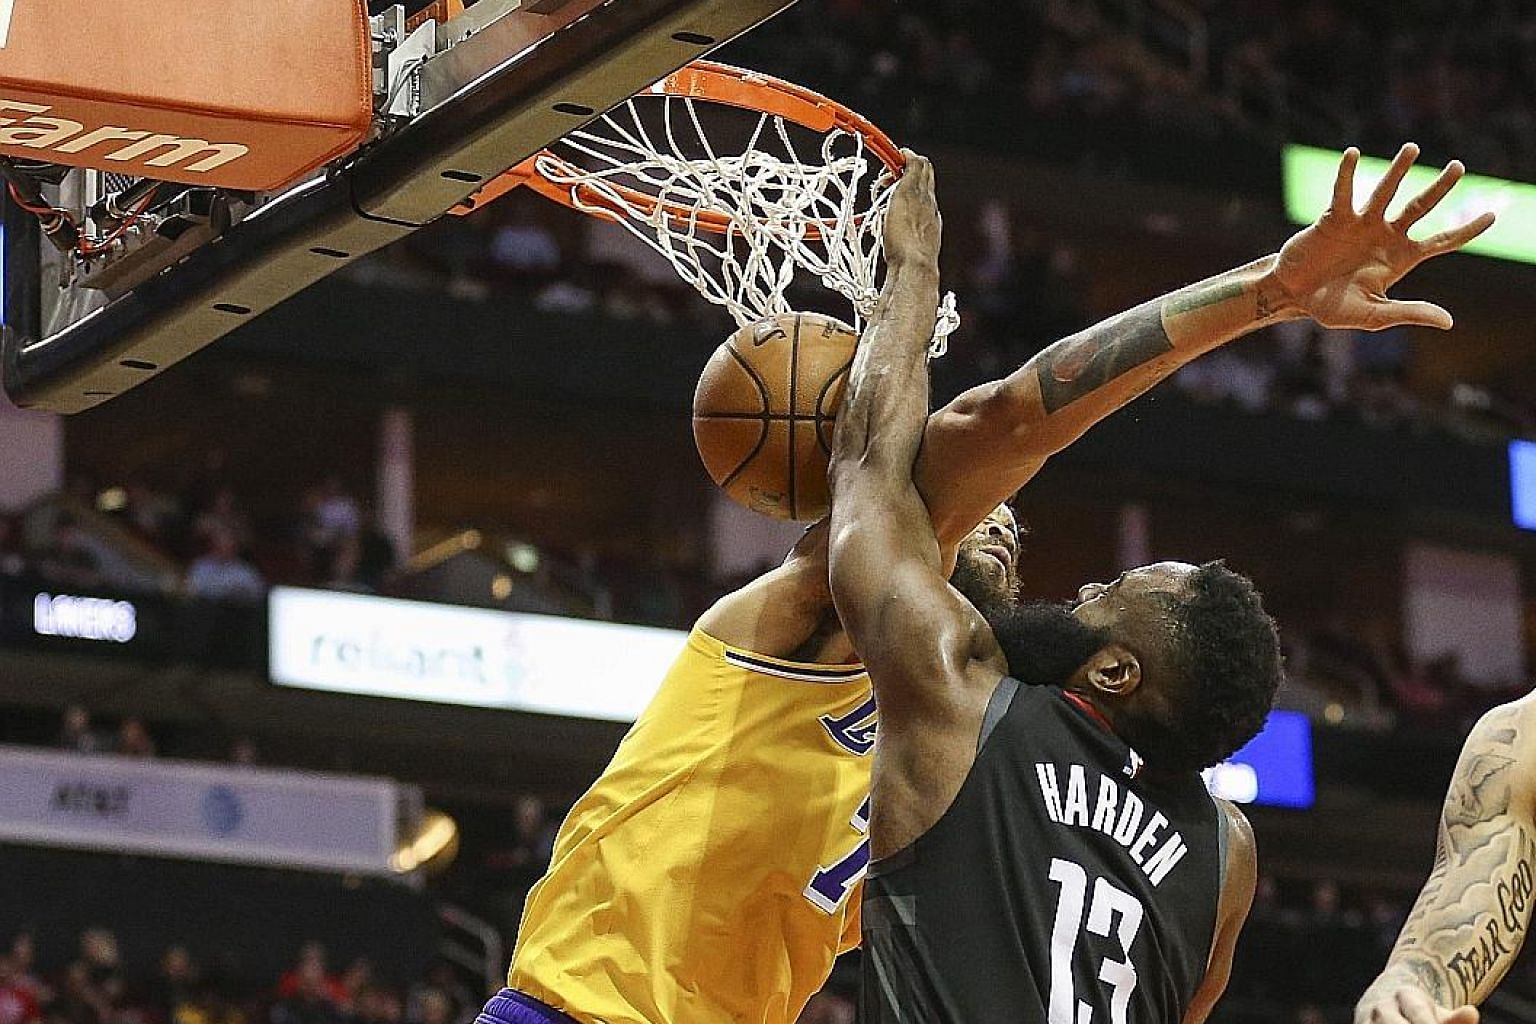 Rockets guard James Harden dunking over Lakers centre JaVale McGee in the first quarter of the game at the Toyota Centre in Houston, Texas. His reaction - he flexed both arms and snarled - had everyone taking notice. Houston won 126-111 but are still